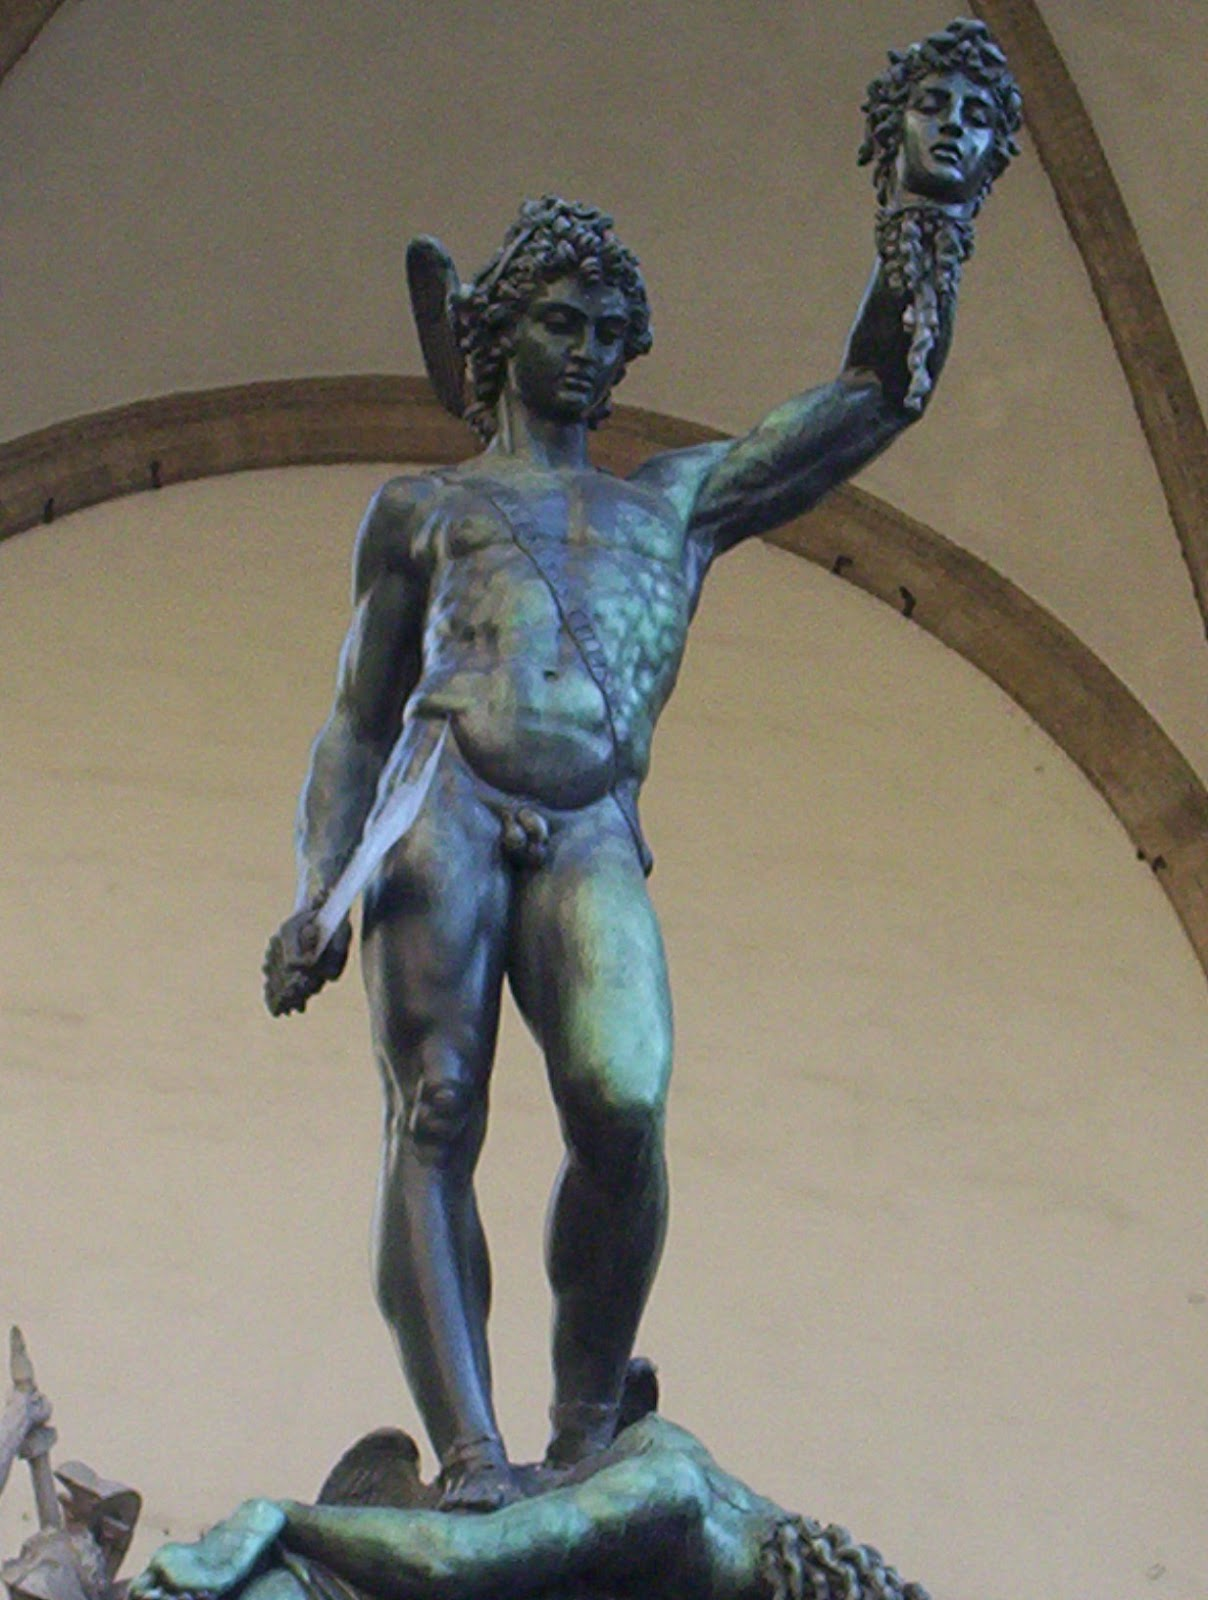 Statue-Florence-Italy-2006-Sealiberty